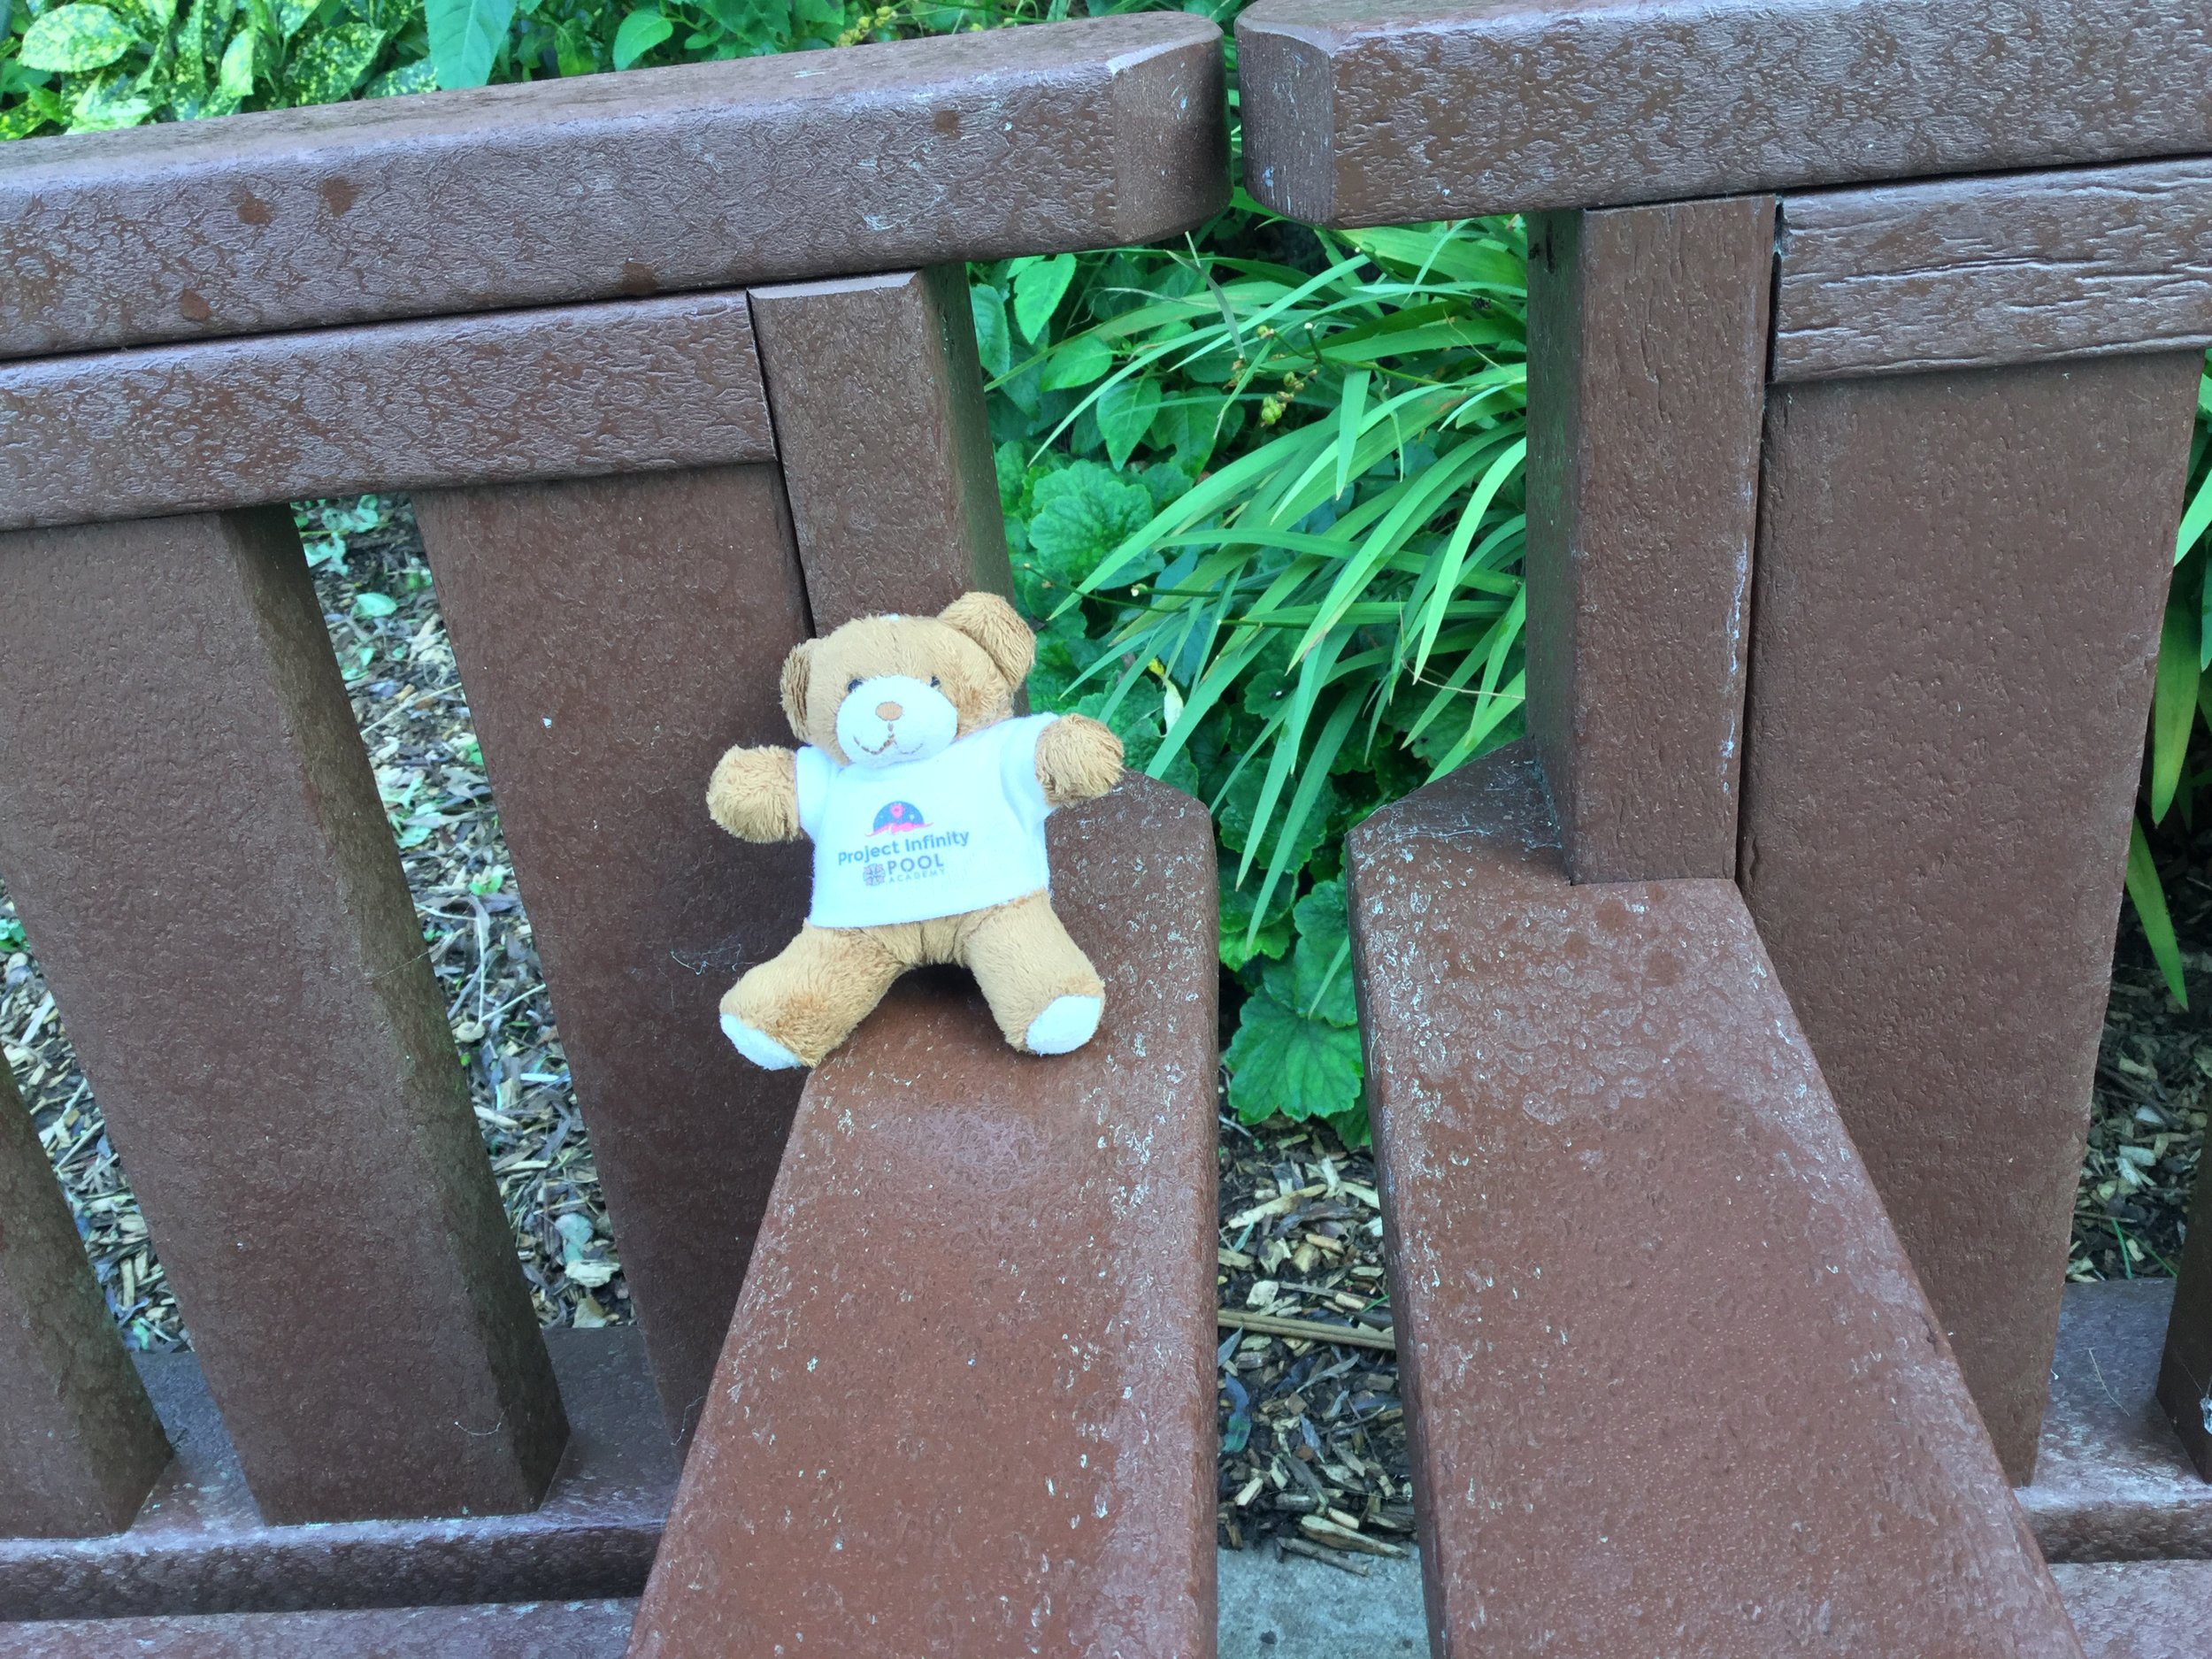 Buzz the Bear taking it easy in the grounds of Pool Academy before Thursday's launch